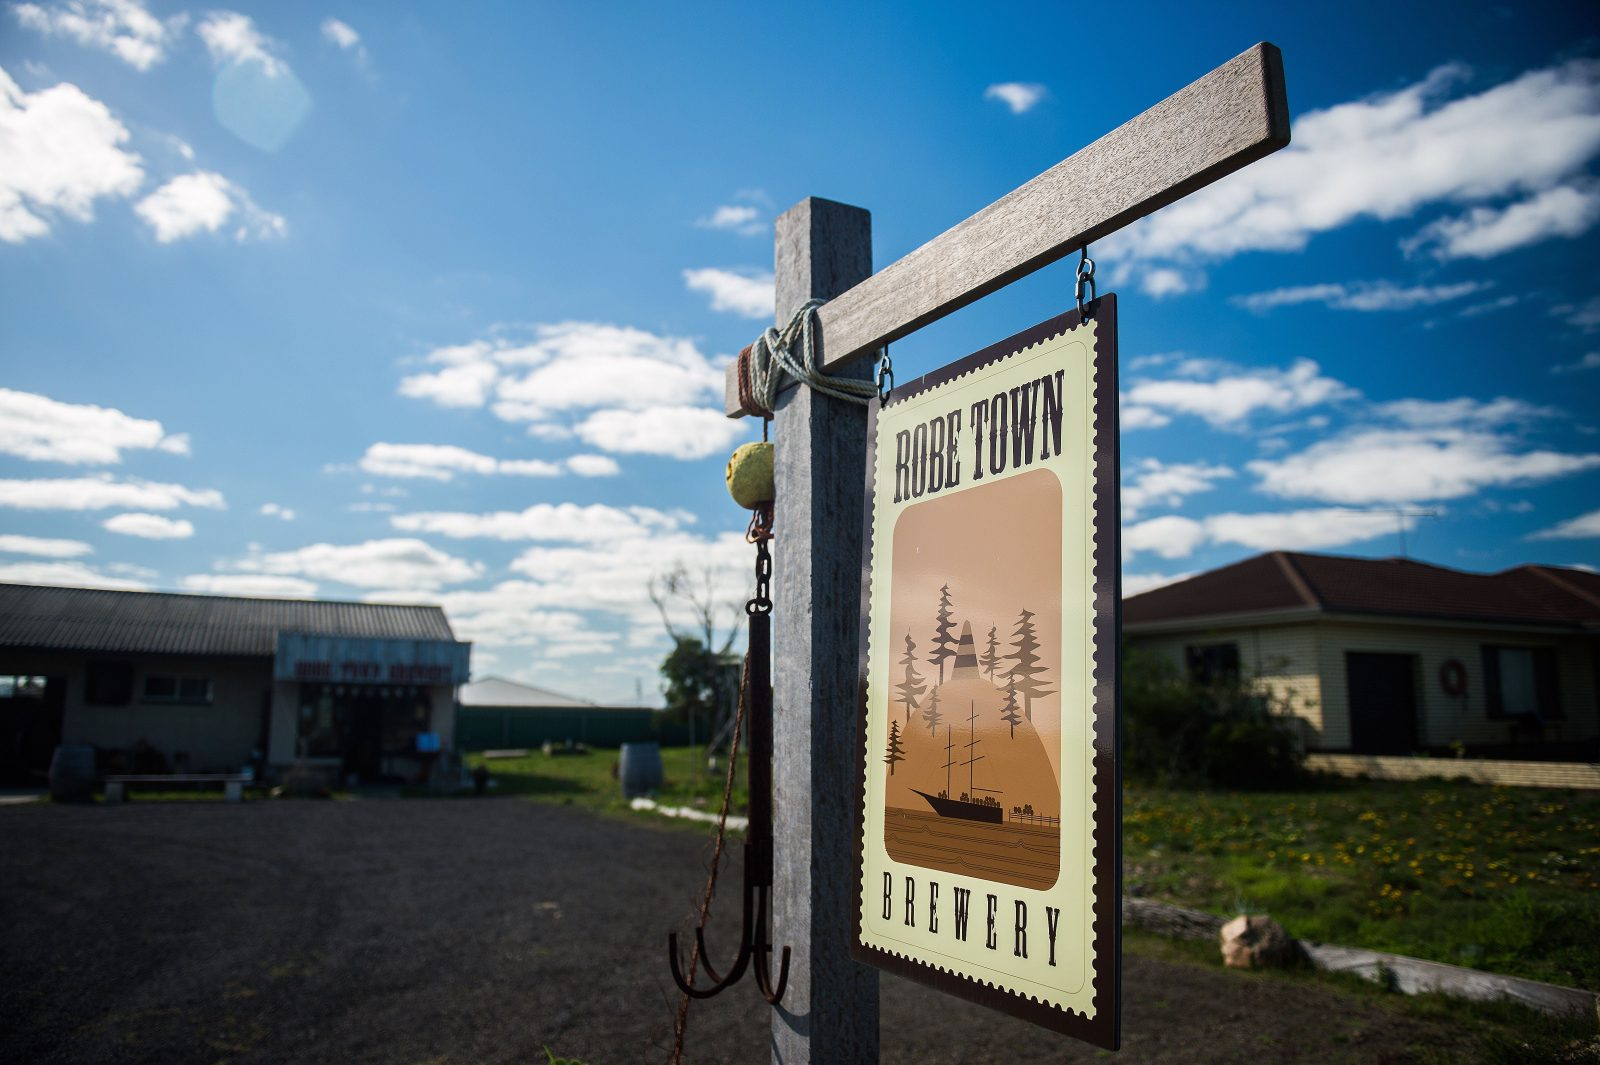 Robe Town Brewery sign